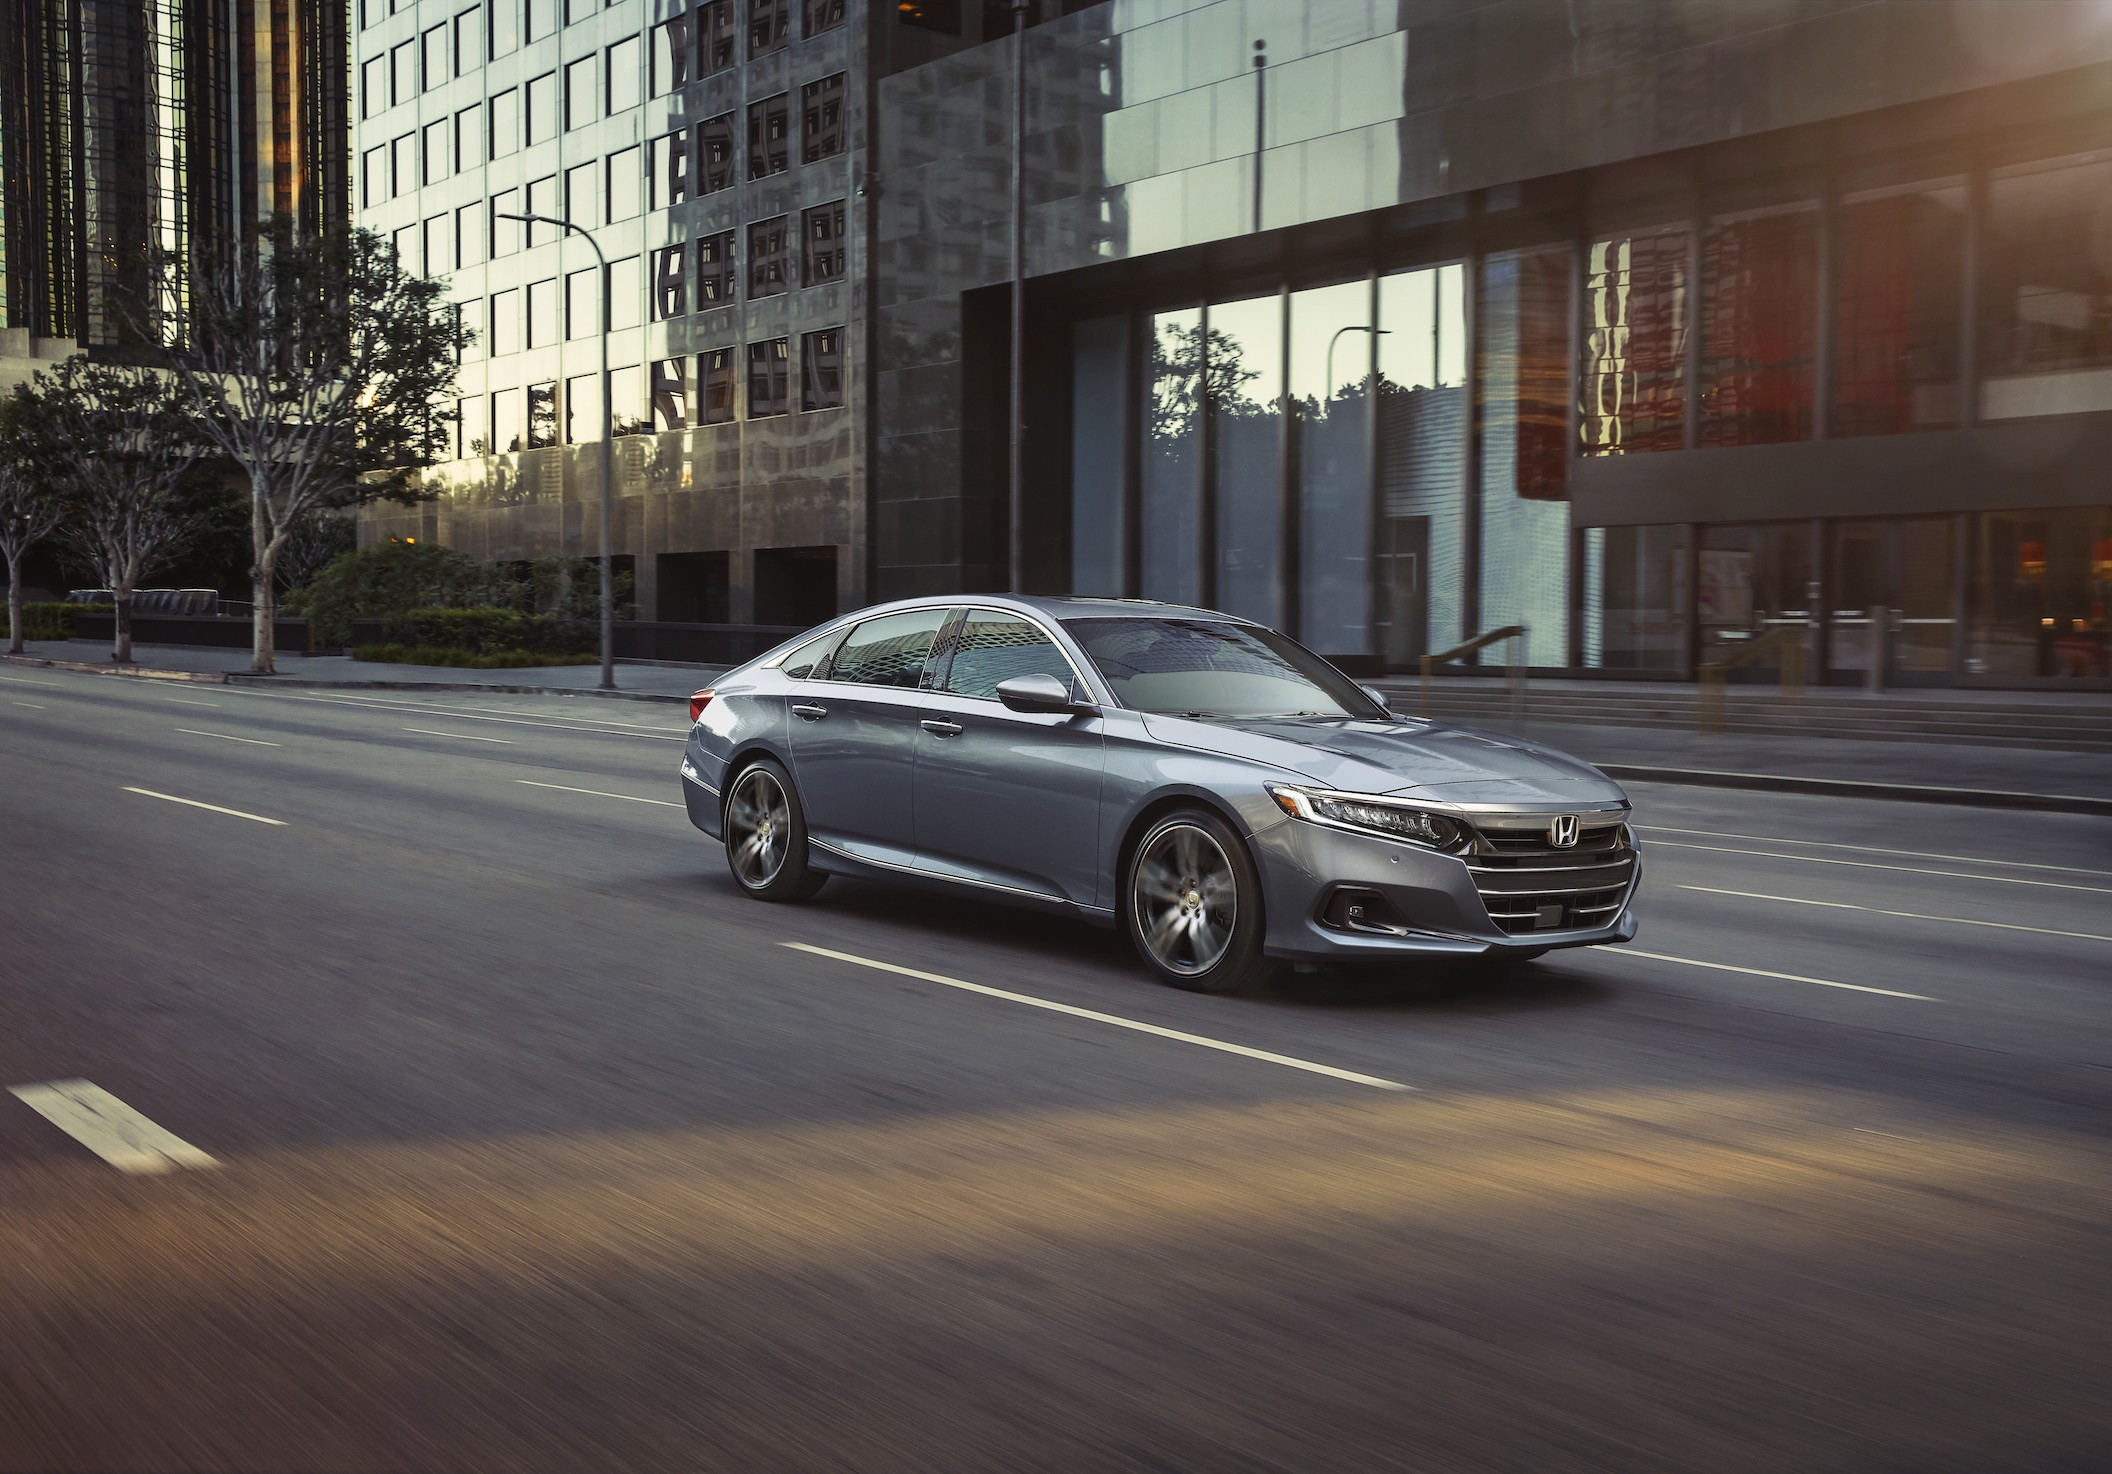 a silver 2021 Honda Accord driving in the city at speed